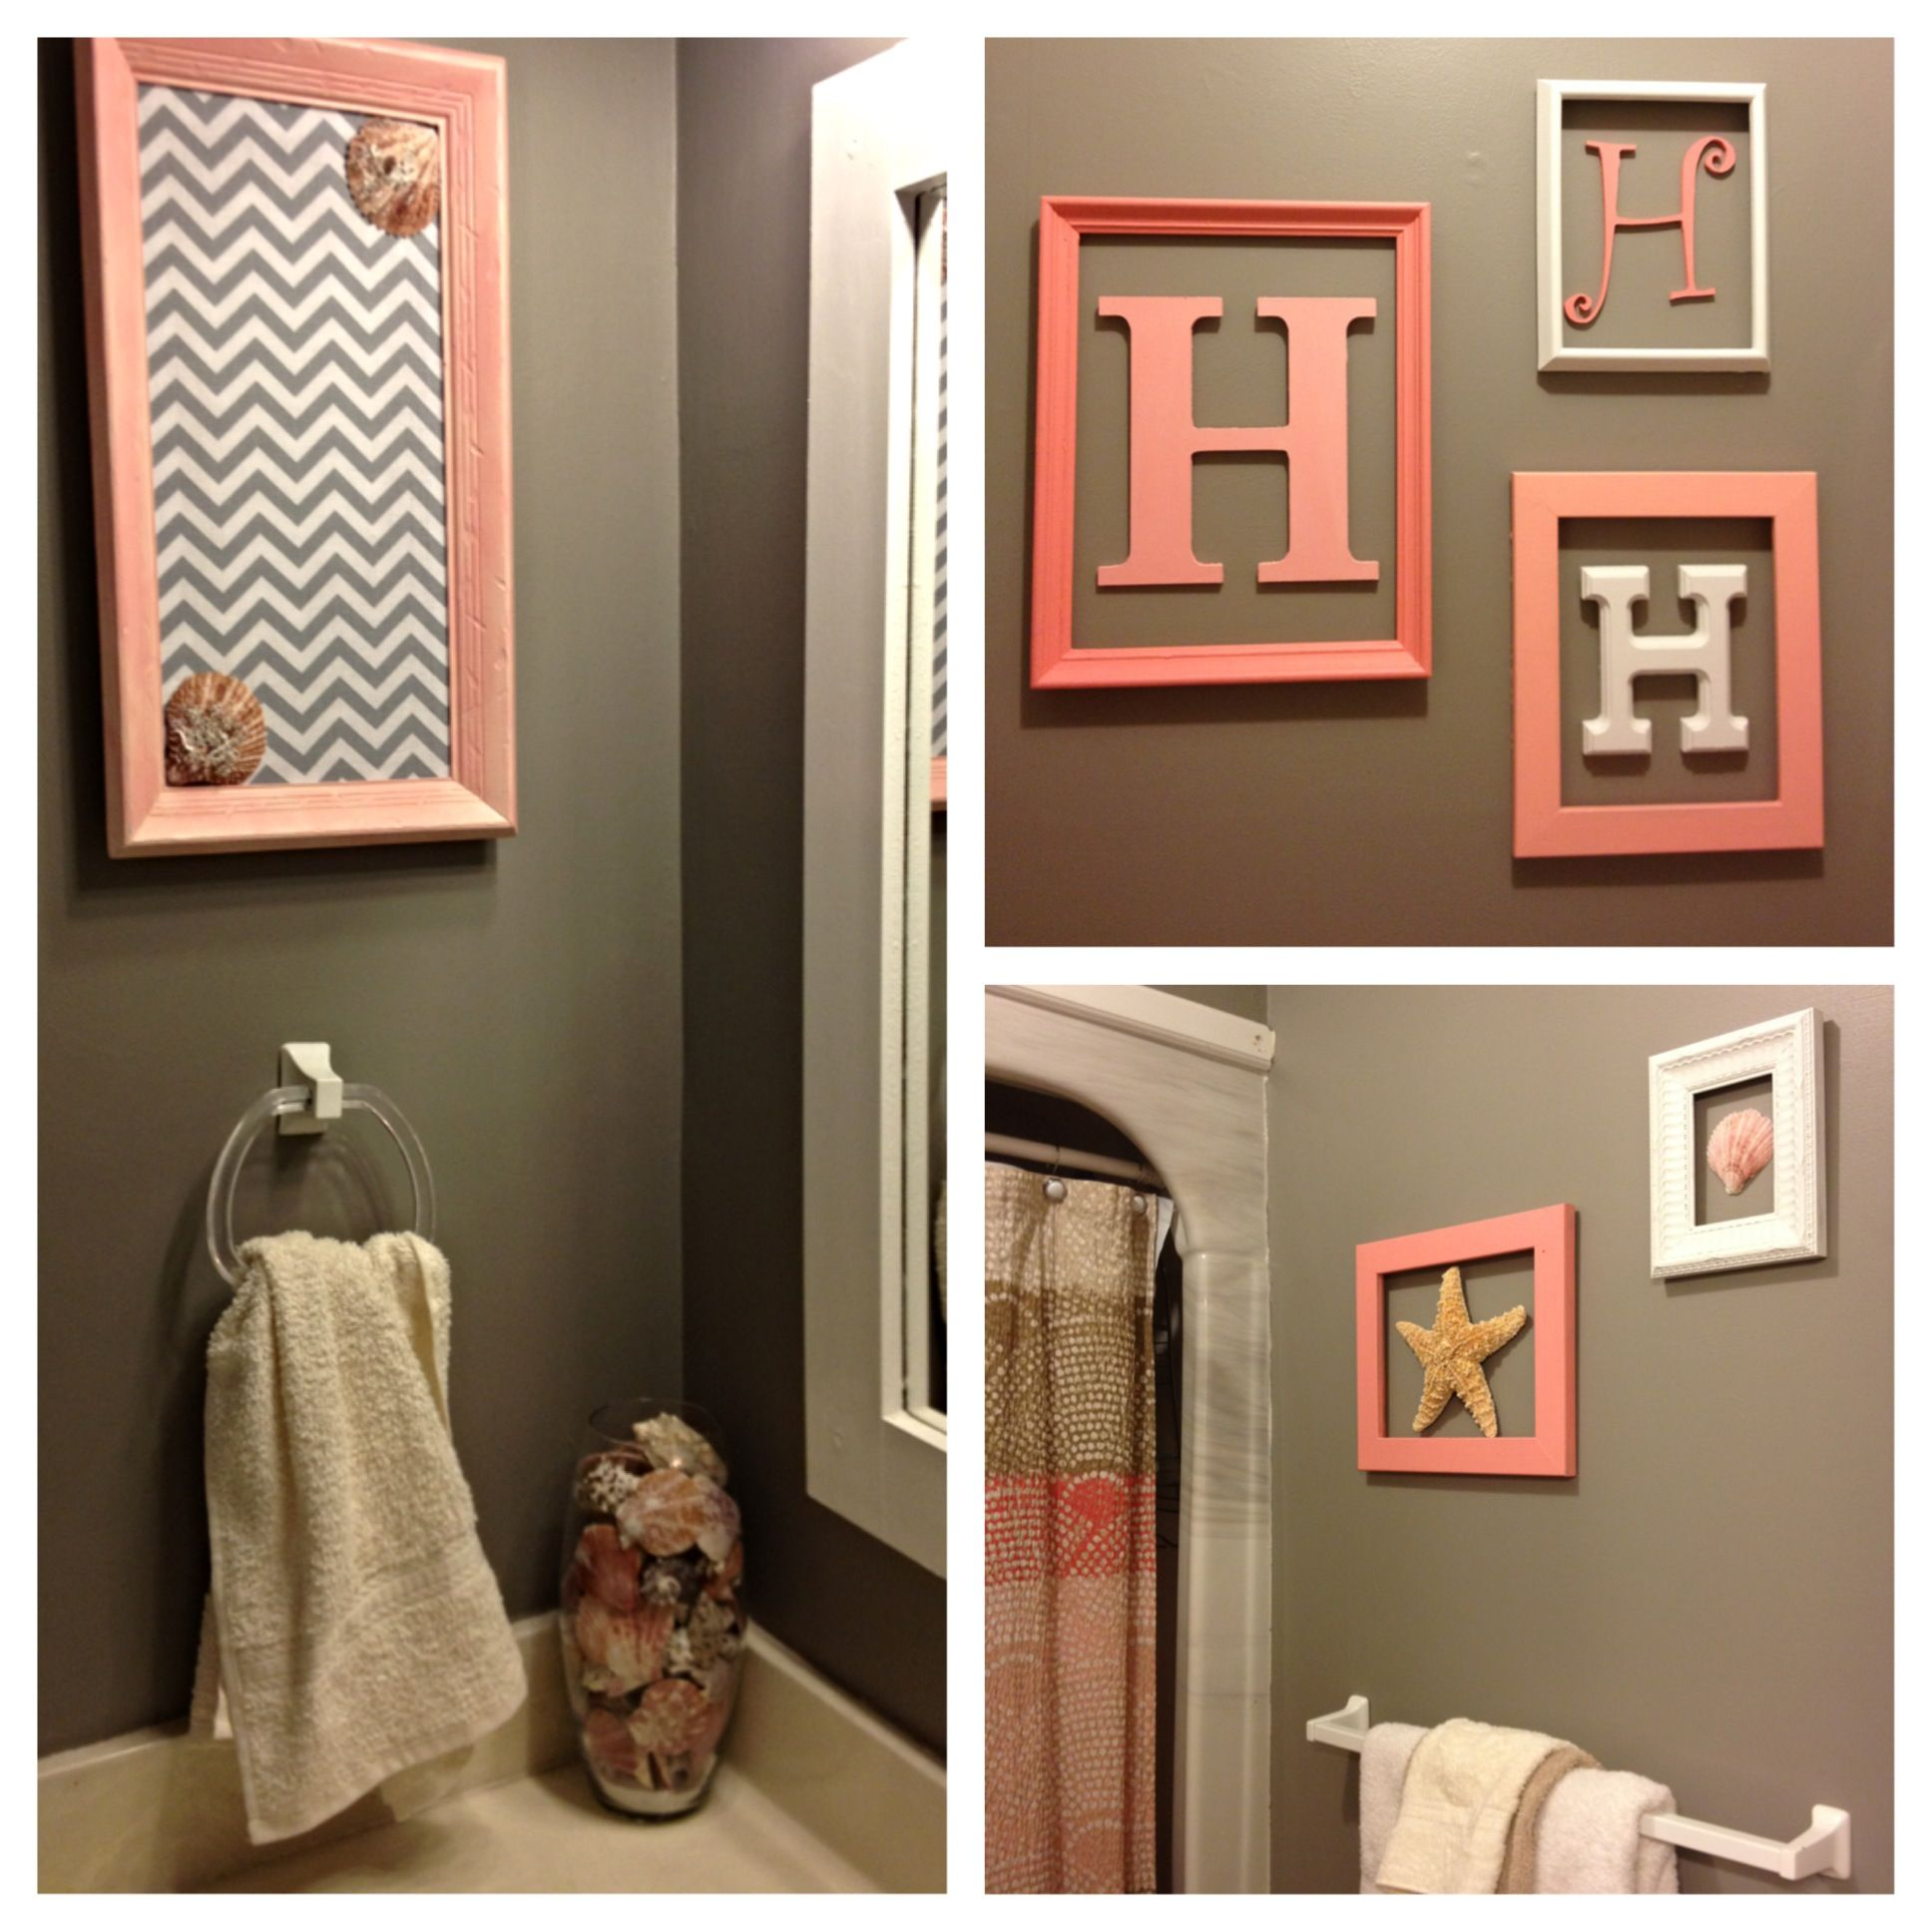 Our new beachy bathroom monogram wall pink tan grey for Red and gray bathroom sets